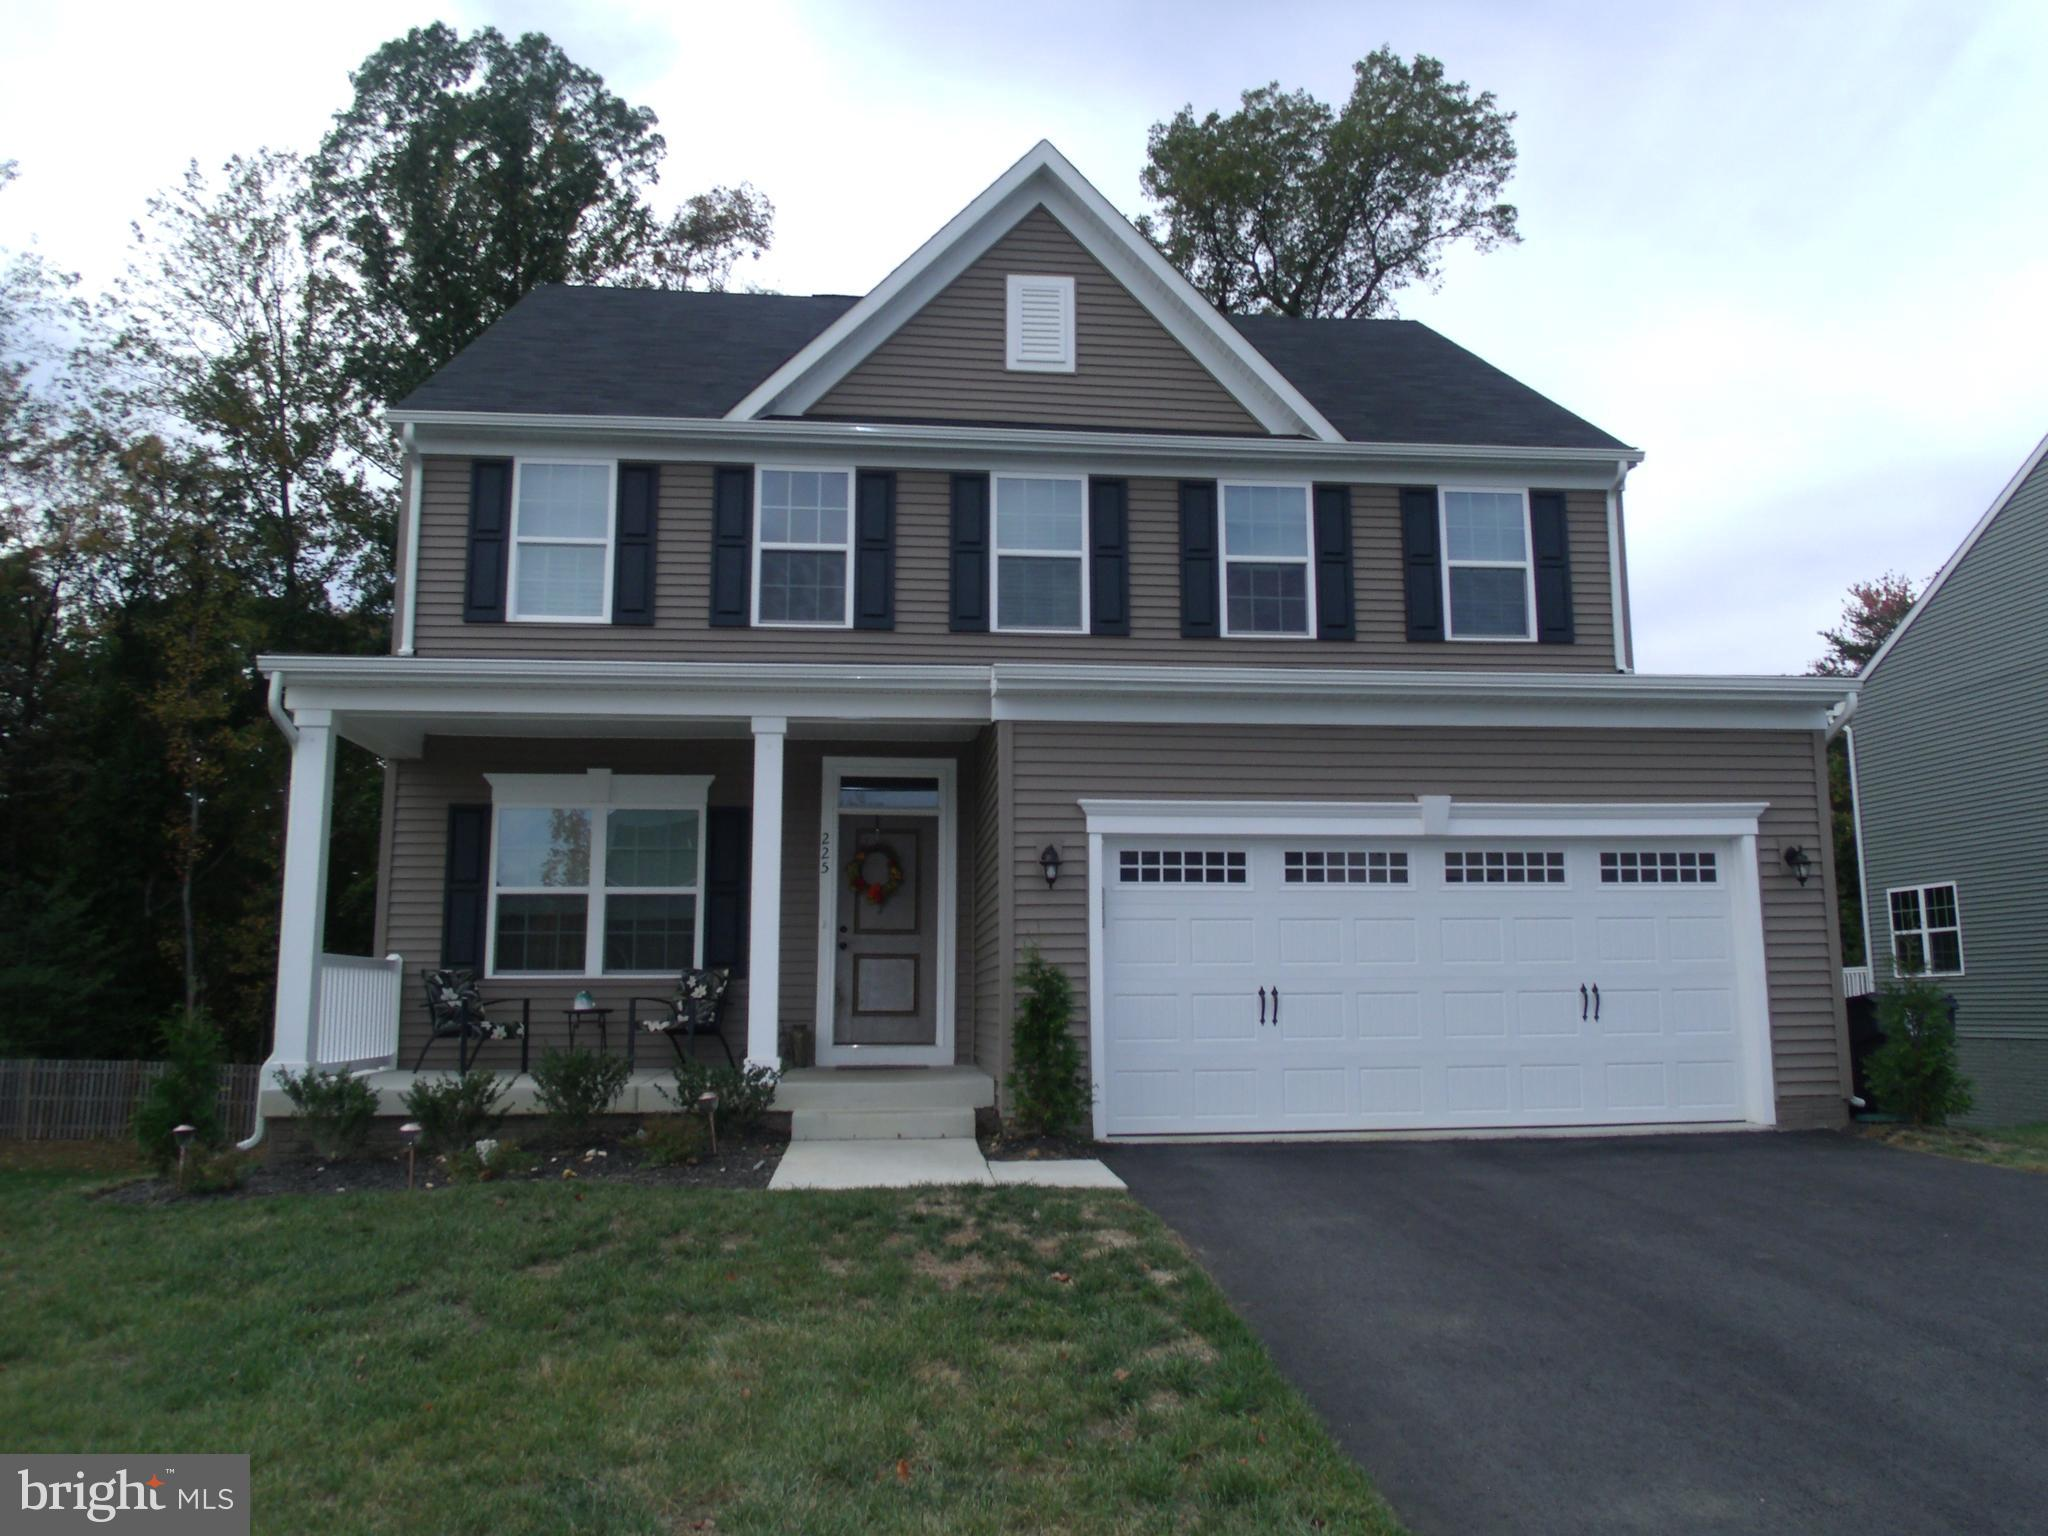 You'll love this delightful 3-story Colonial home located minutes from I-95 and the VRE in Stafford